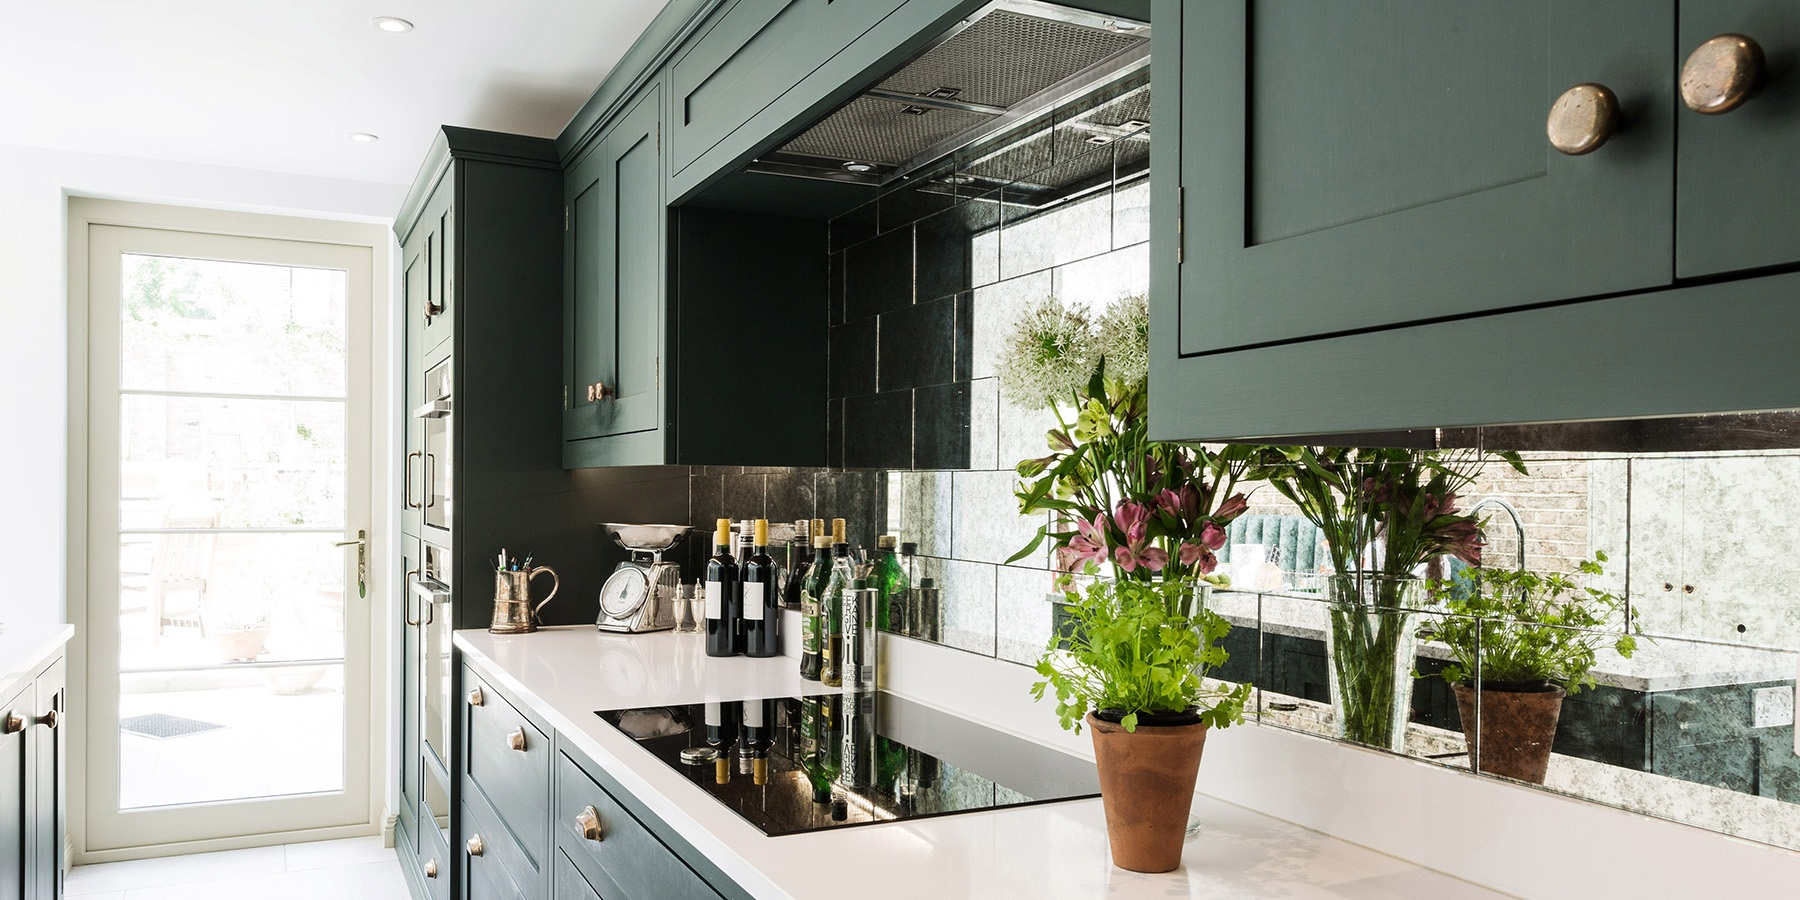 Burlanes Hoyden Classic Kitchen - Our Hoyden cupboards are handmade using tulipwood, a strong American hardwood, carefully handpicked to ensure a smooth and consistent finish every time.